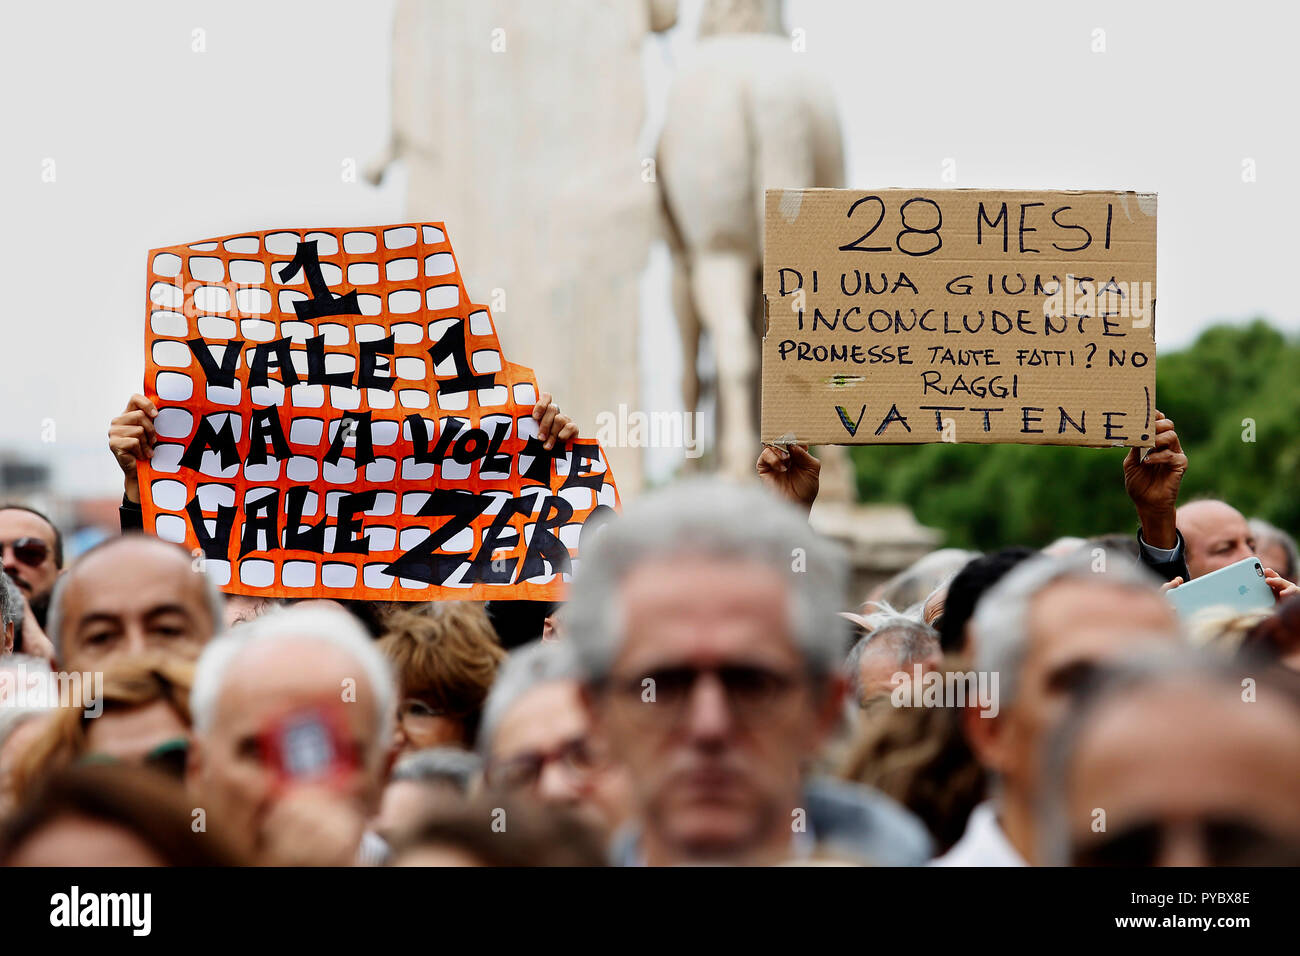 Rome, Italy. 27th Oct, 2018. banners Rome October 27th 2018. Campidoglio Square. Demonstration of roman citizens agains the mayor and against the deterioration and the huge problems that have been afflicting Rome during the last months, like garbage, carelessness and huge and dangerous holes in the streets. The sit-in was organized by 6 women that created the movement 'Rome says Stop'. Foto Samantha Zucchi Insidefoto Credit: insidefoto srl/Alamy Live News - Stock Image